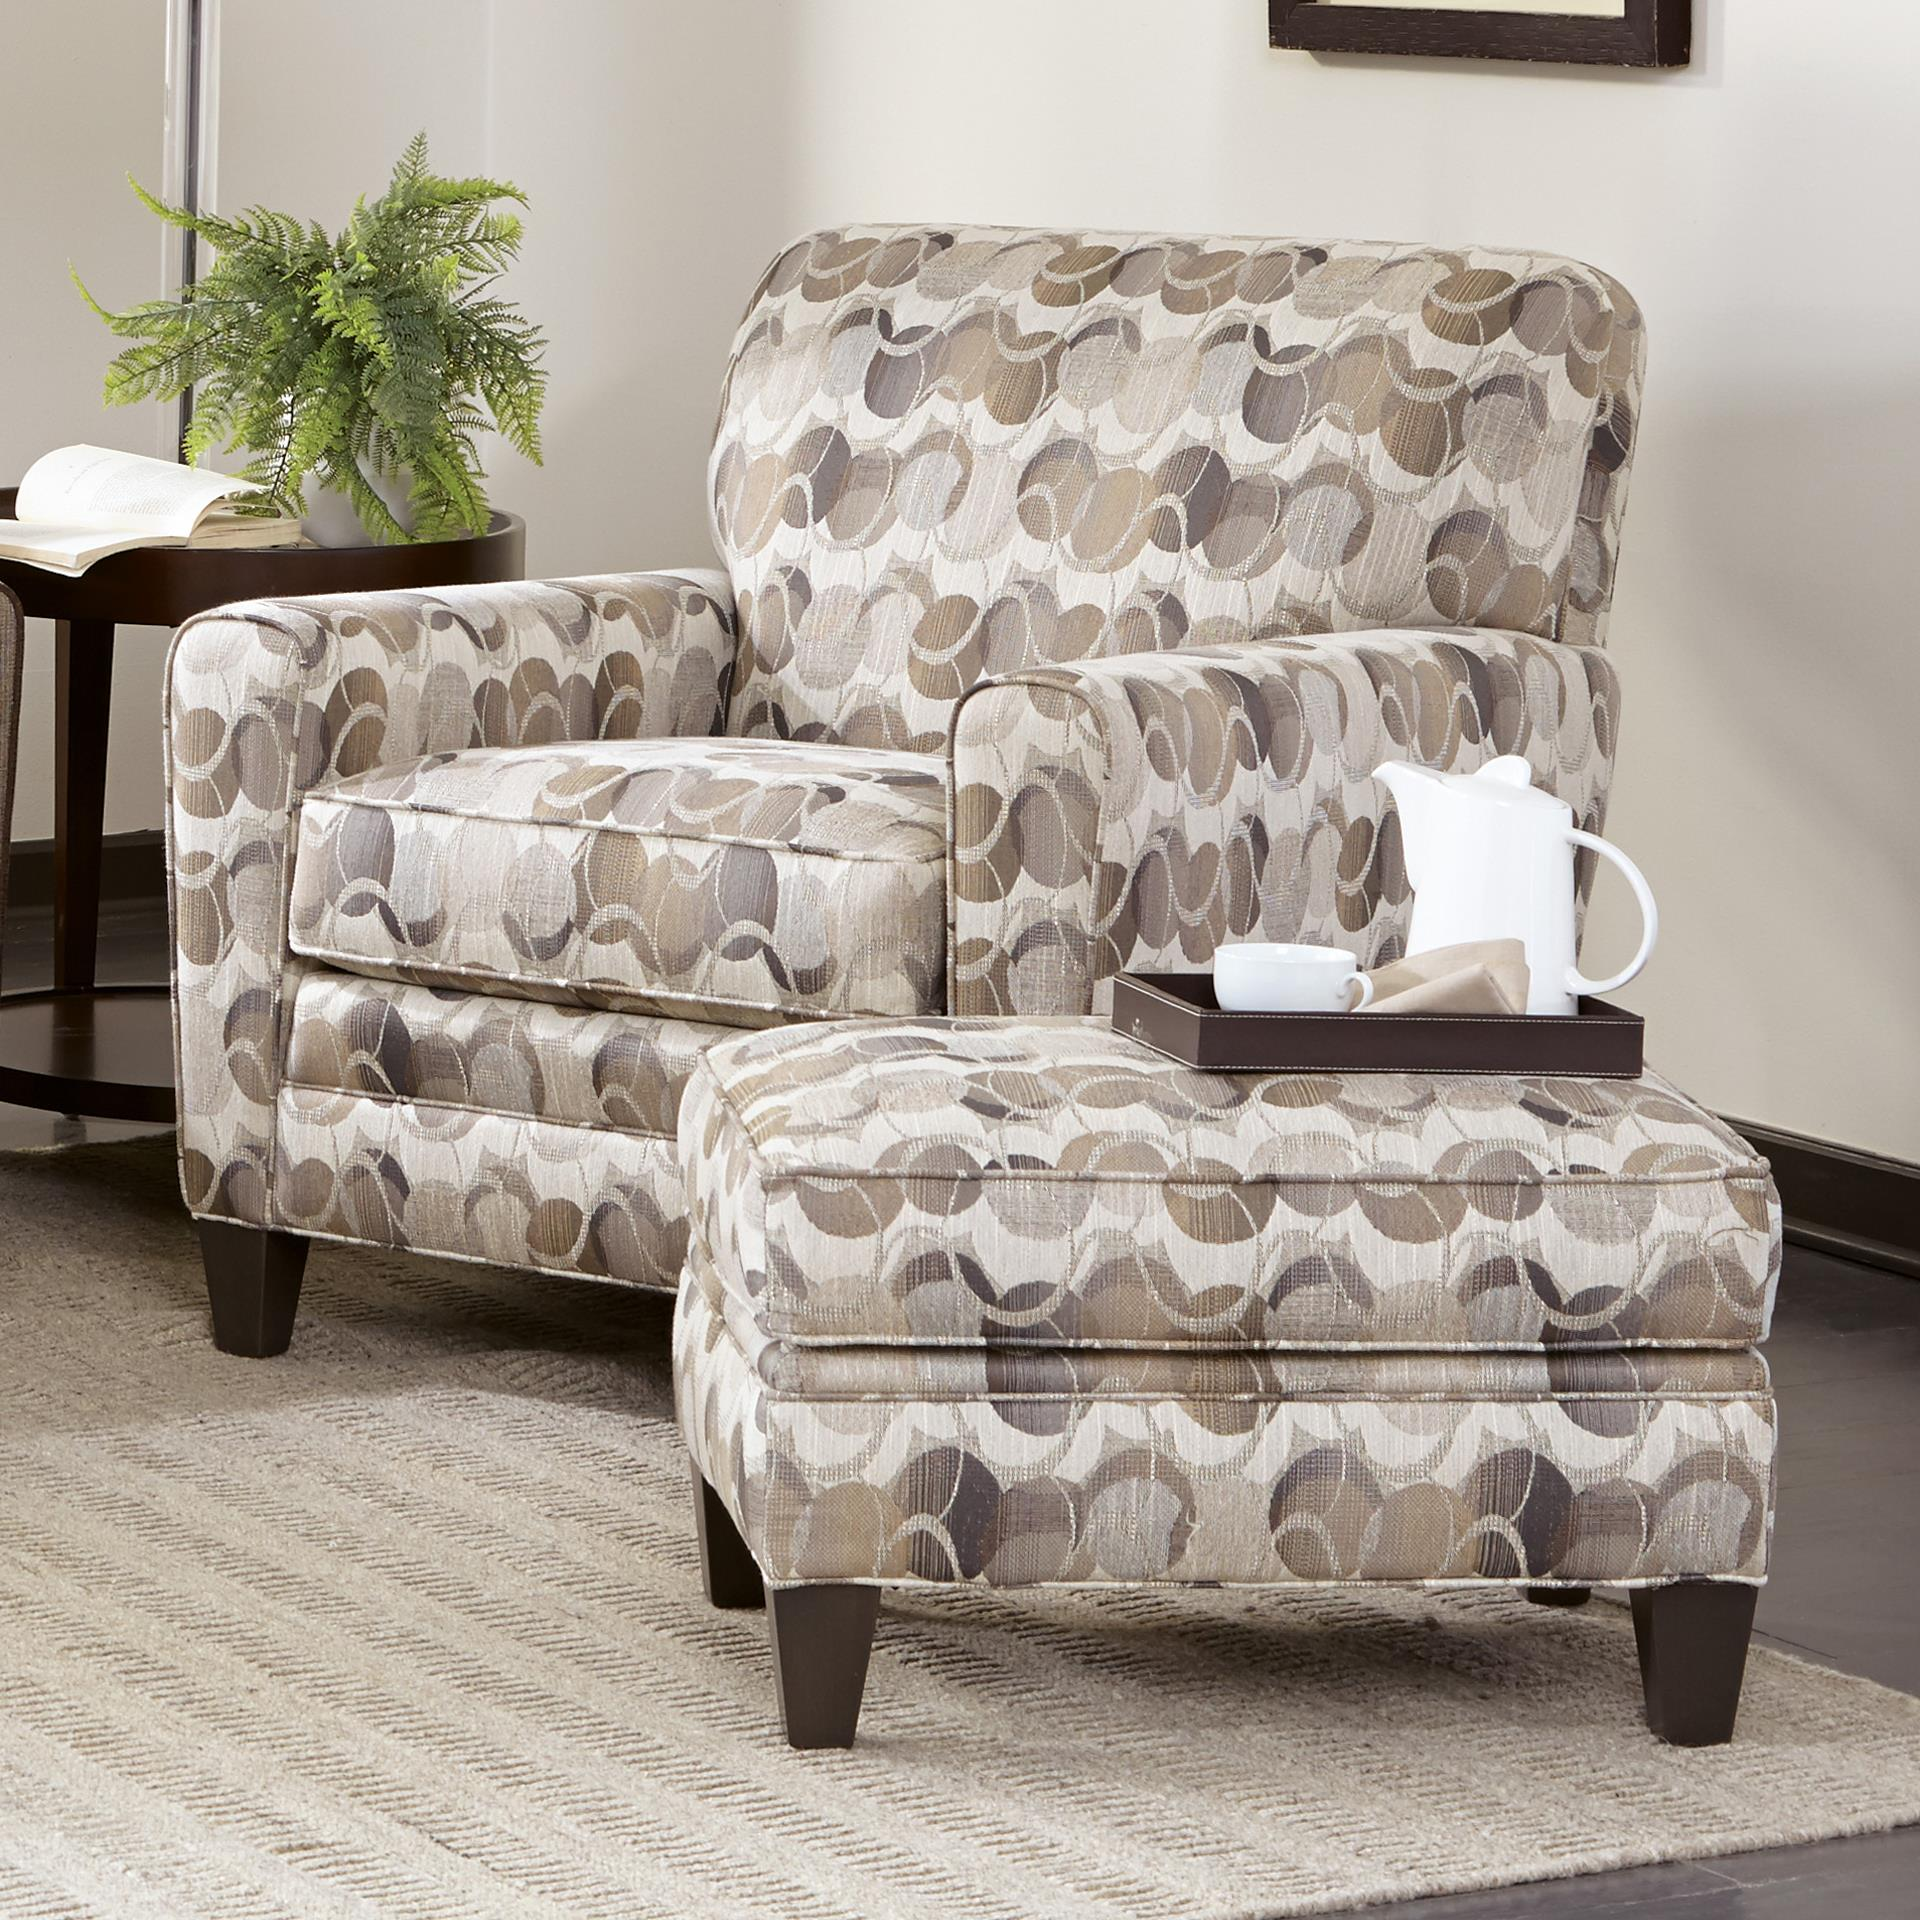 225 Chair & Ottoman Set by Smith Brothers at Mueller Furniture